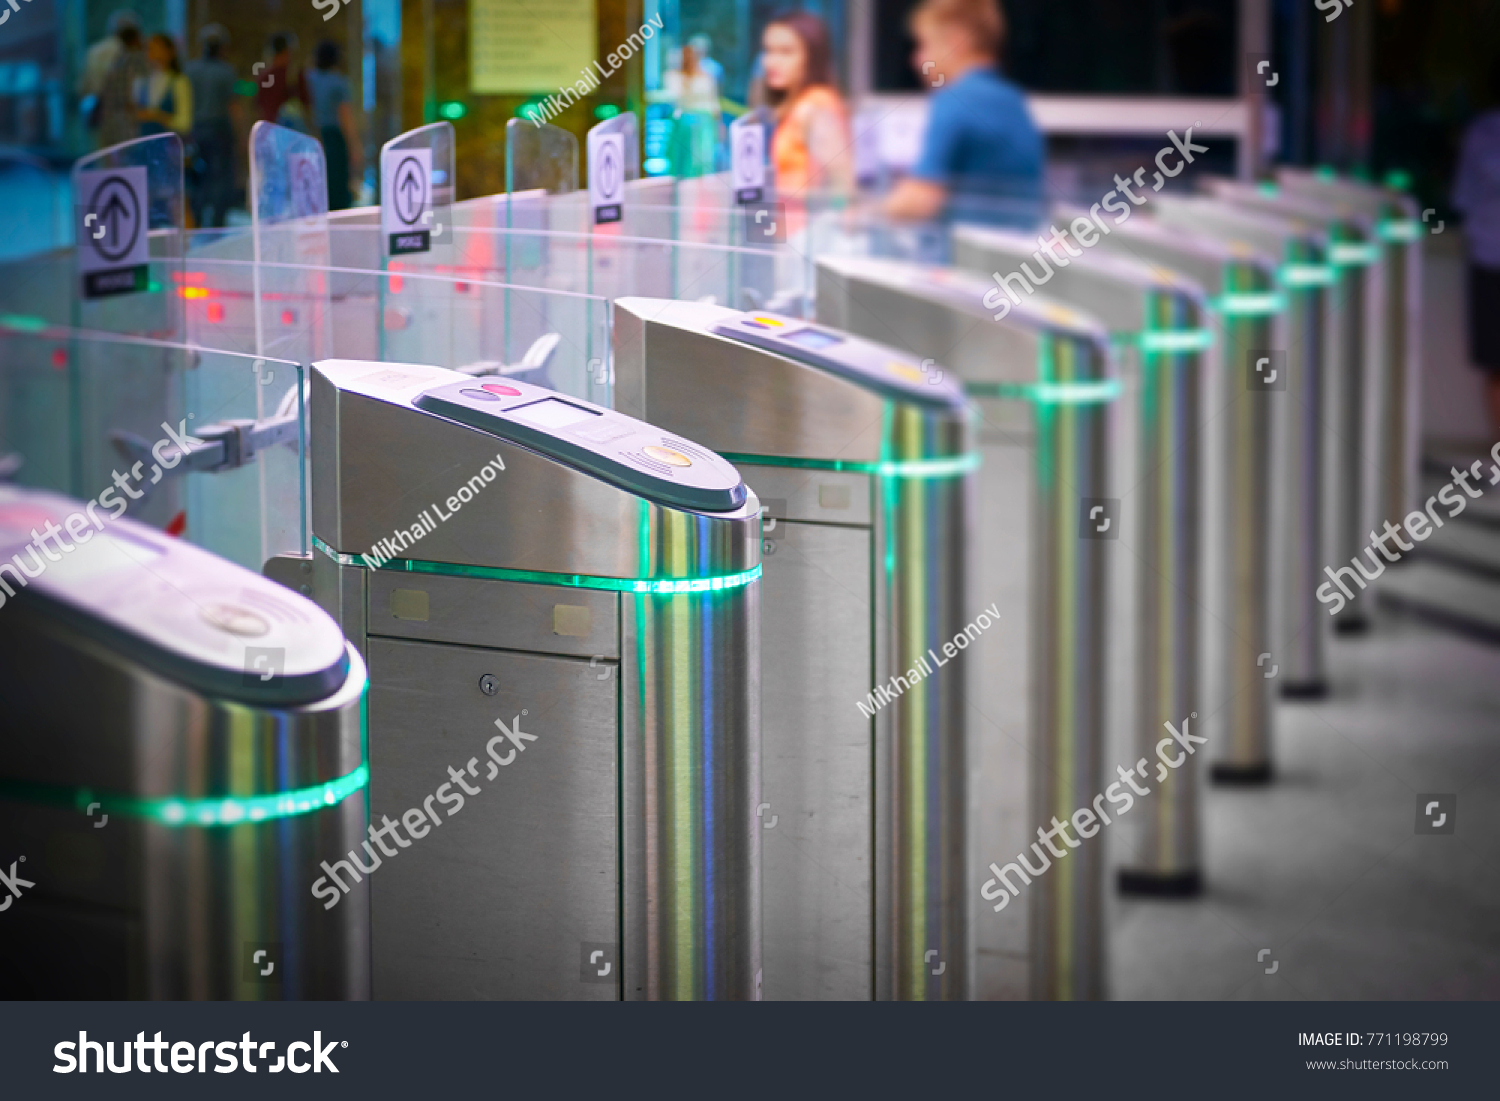 stock-photo-view-on-metro-station-ticket-barriers-with-green-light-for-entry-moscow-metro-station-station-771198799